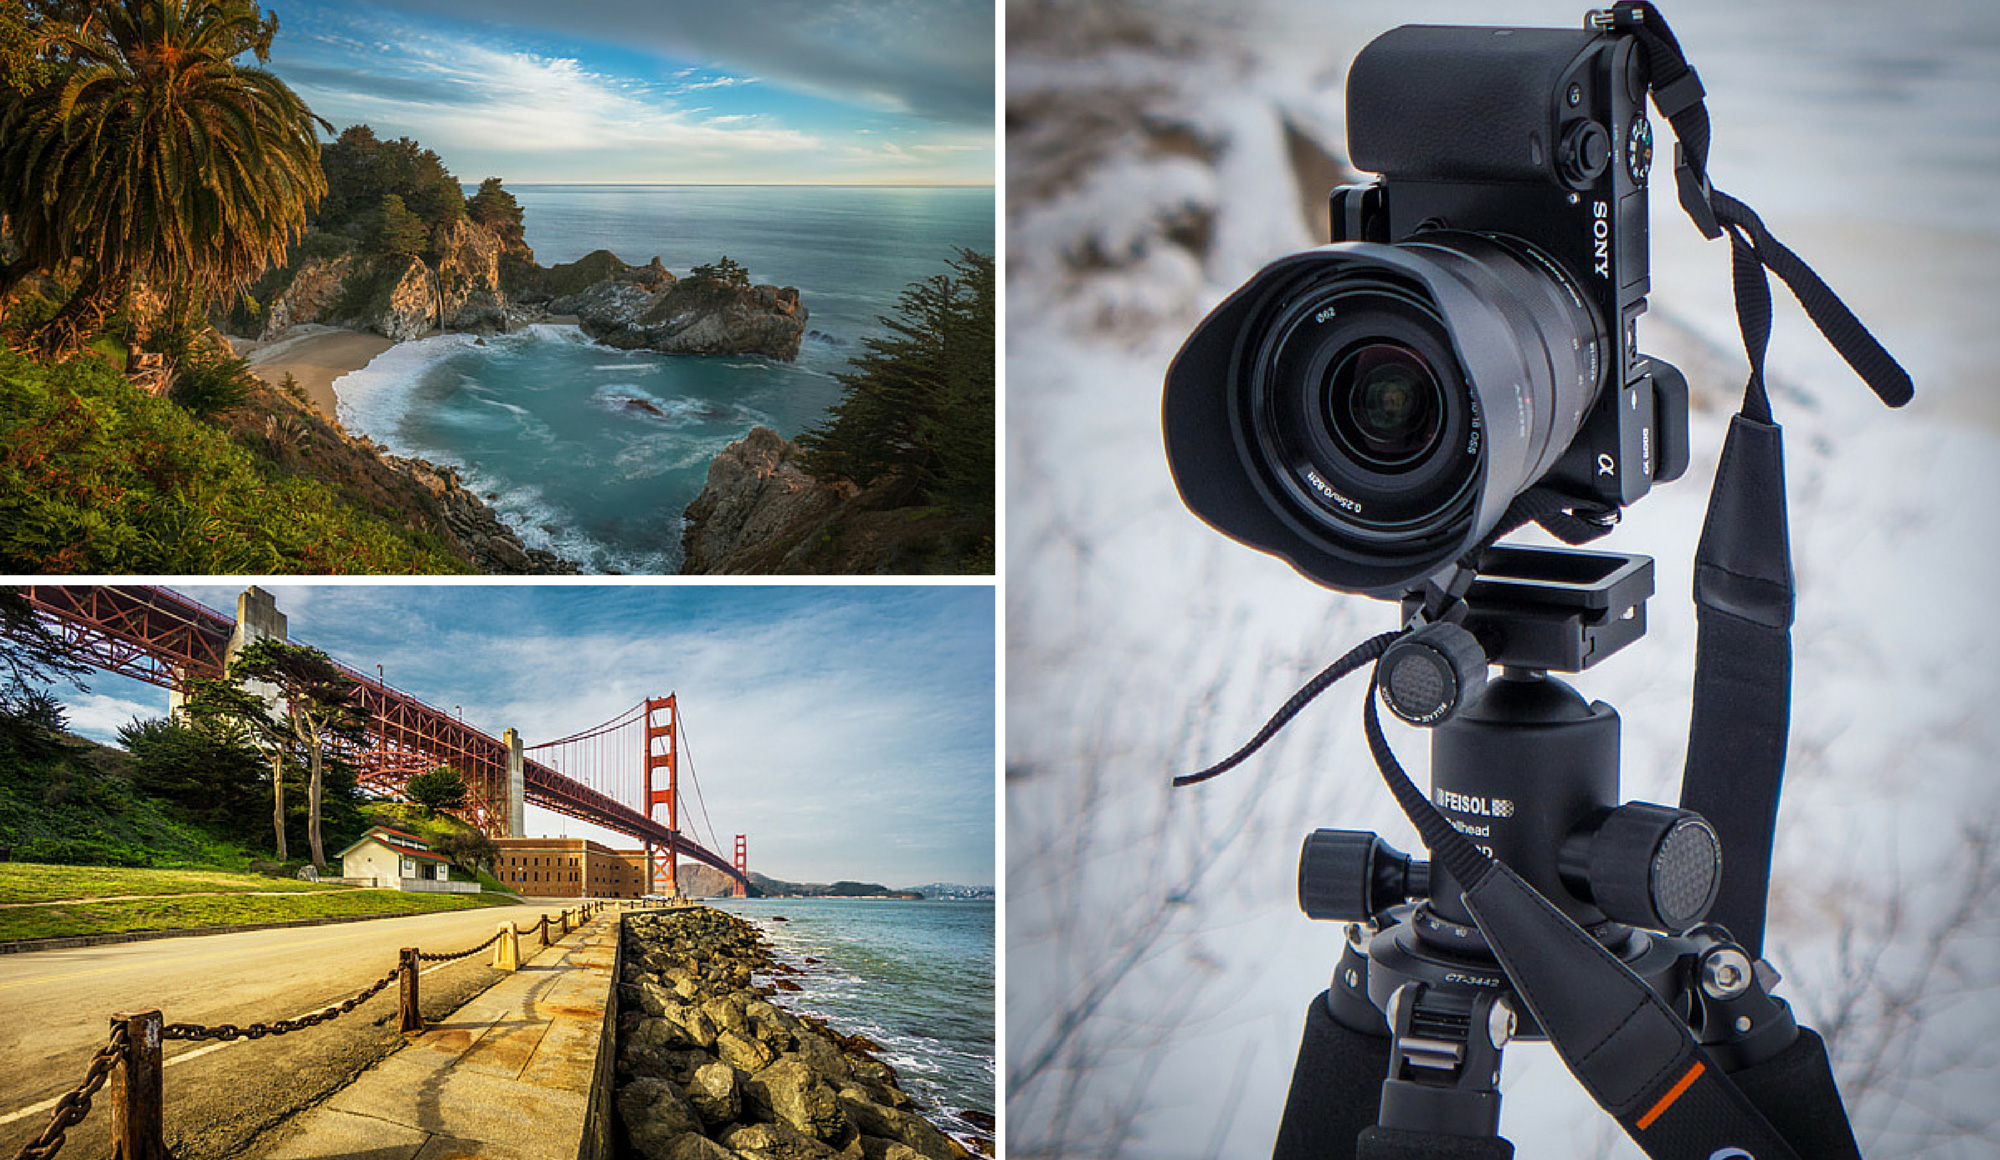 e0acae207c6 5 Lessons Learned Switching from DSLR to Mirrorless for Travel Photography